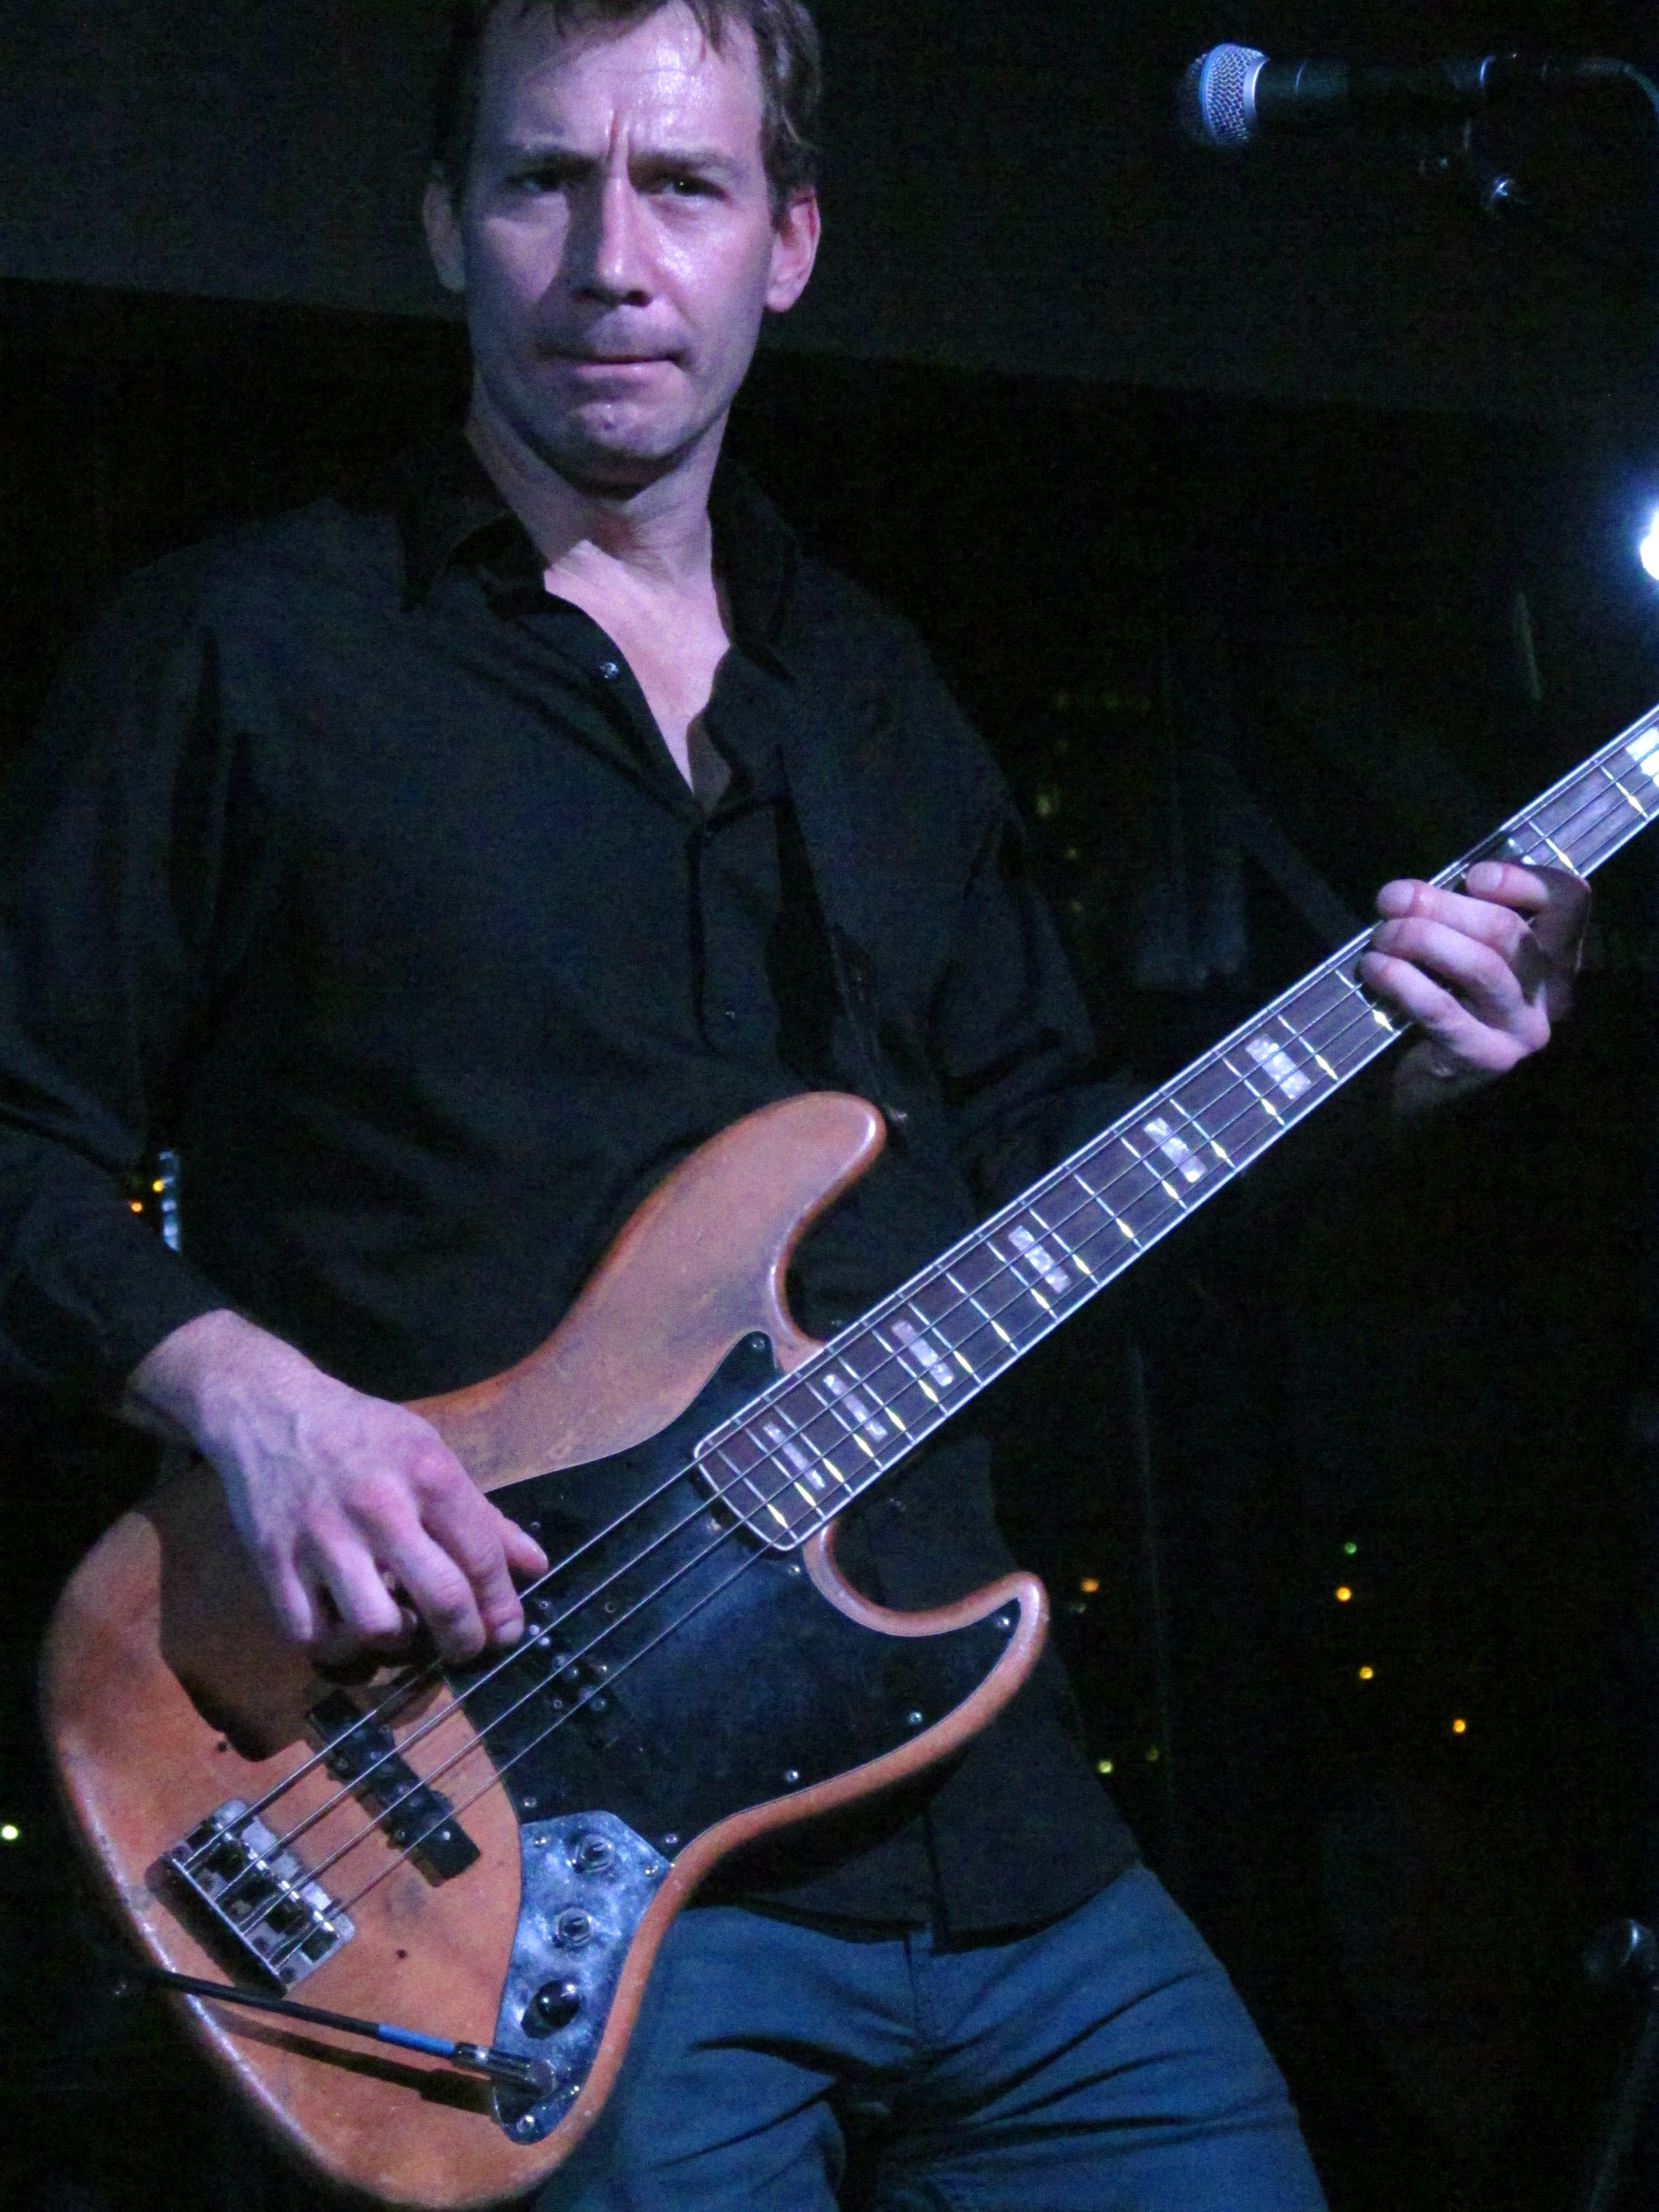 #HappyBirthday yesterday (oops!) to the one and only BZ, #NoSurfFriend Billy Zehnal of Angela Perley & the Howlin' Moons. Here he is layin' down that bass line at Music Box Supper Club, 11/29/14.